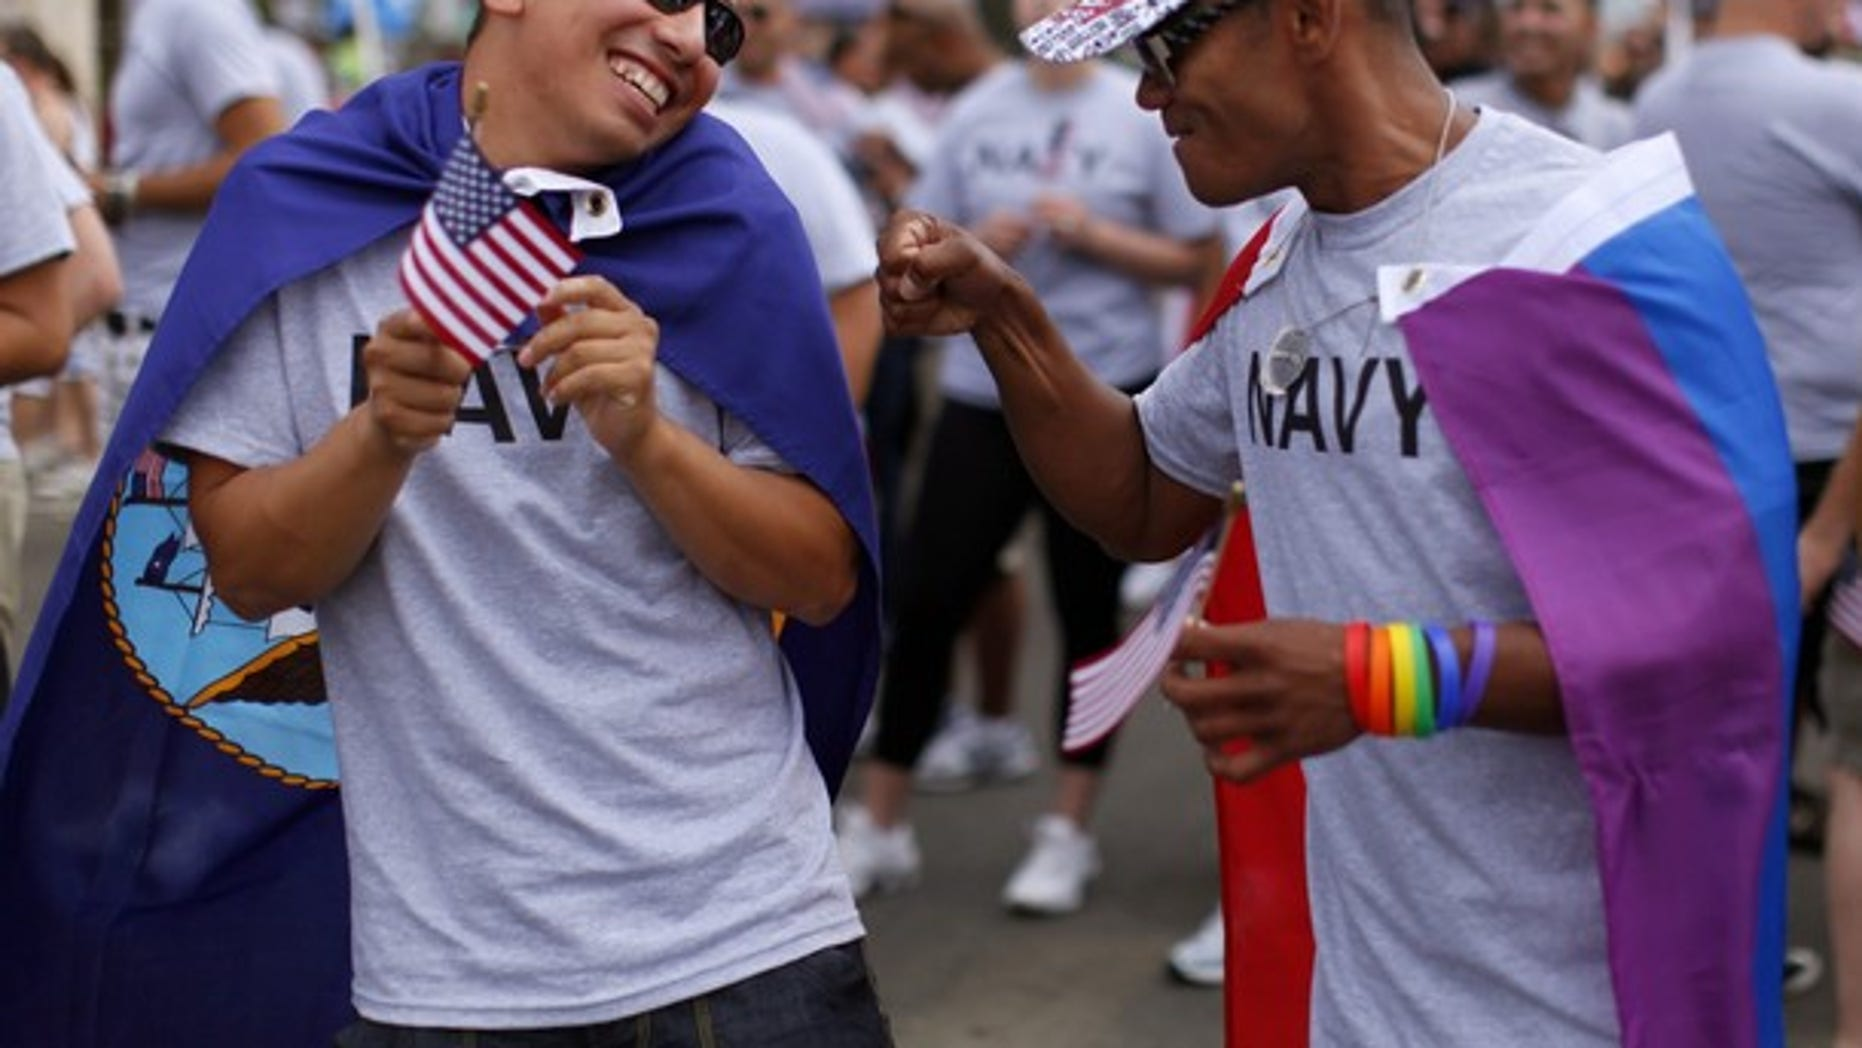 Matthew Avila (L), active duty gunners mate 2nd class U.S. Navy, receives a punch in the arm from former EN2 U.S. Navy's Ray Cordero as they prepare to march with active and non-active U.S. military personnel who are participating for the first time in San Diego's Gay Pride Parade in San Diego, July 16, 2011.